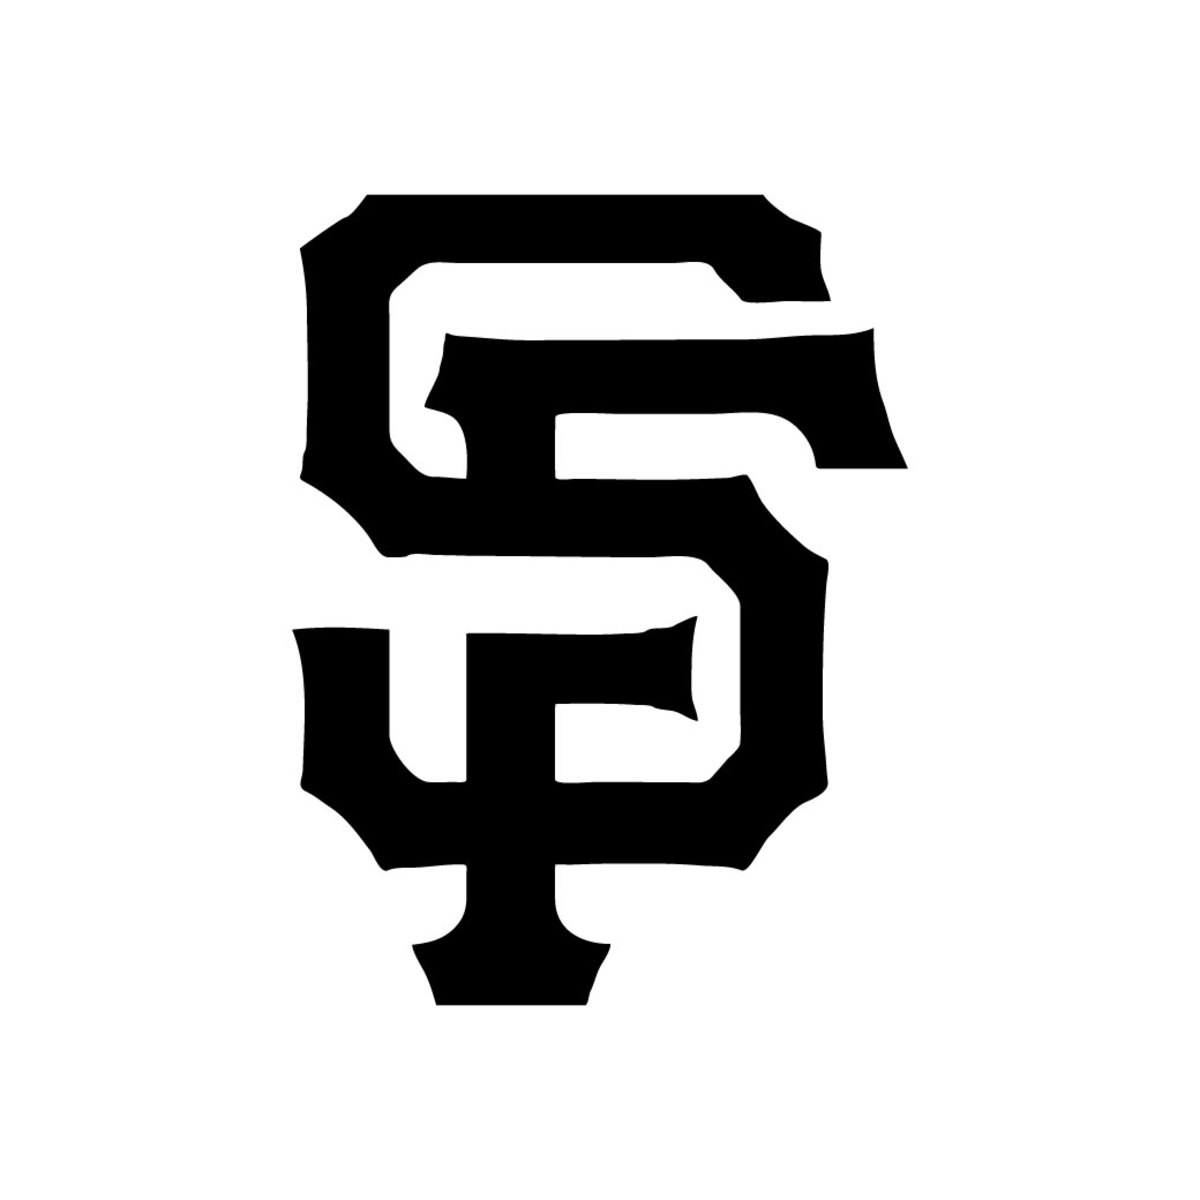 Use this San Francisco Giants stencil to carve a baseball jack-o'-lantern.